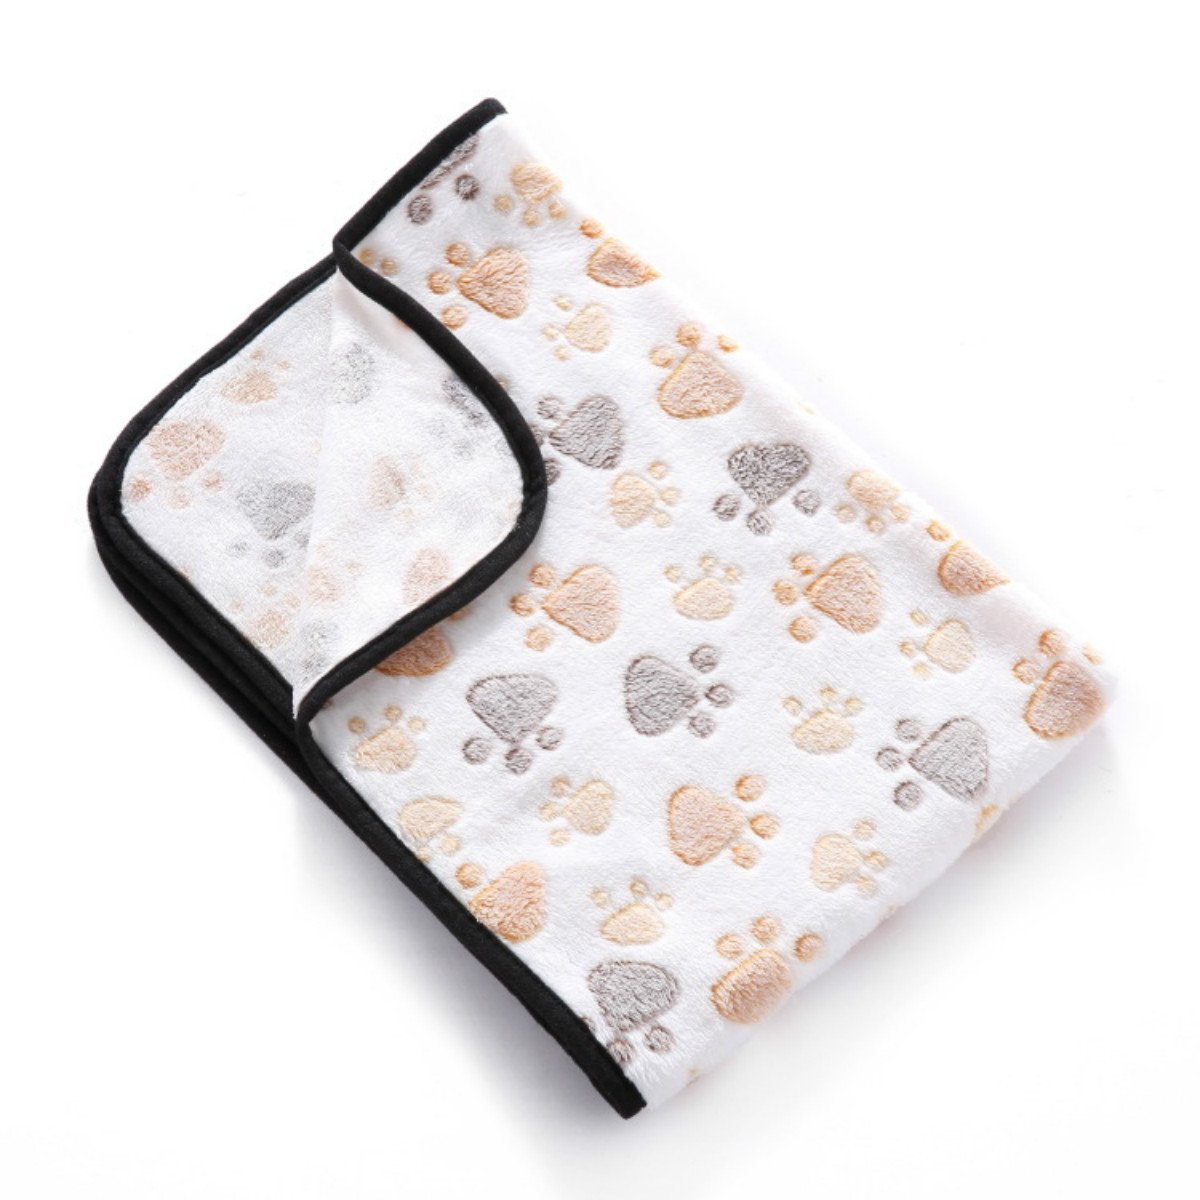 PetBoBo Pet Dog Cat Puppy Blanket Warm Dog Cat Warm Blankets Pet Sleep Mat Pad Bed Cover, Soft Blanket for Pet, Super Soft Micro Plush Pet Blanket Cushion Mat for Animals